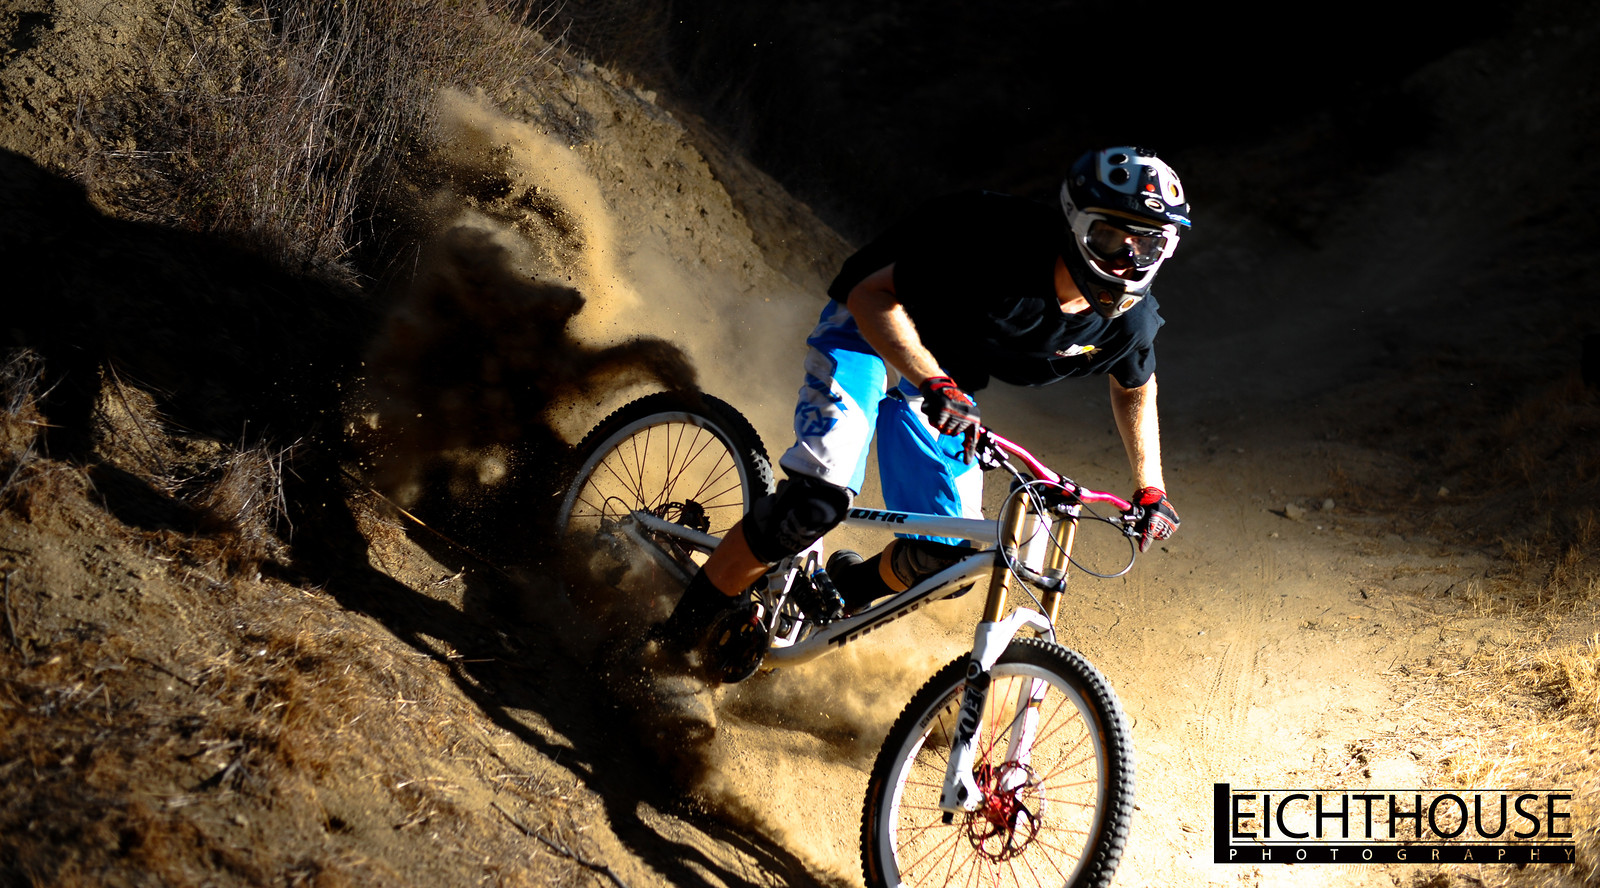 Flash practice with Turner racings Mike Daniels - LeichtHouse photography - Mountain Biking Pictures - Vital MTB